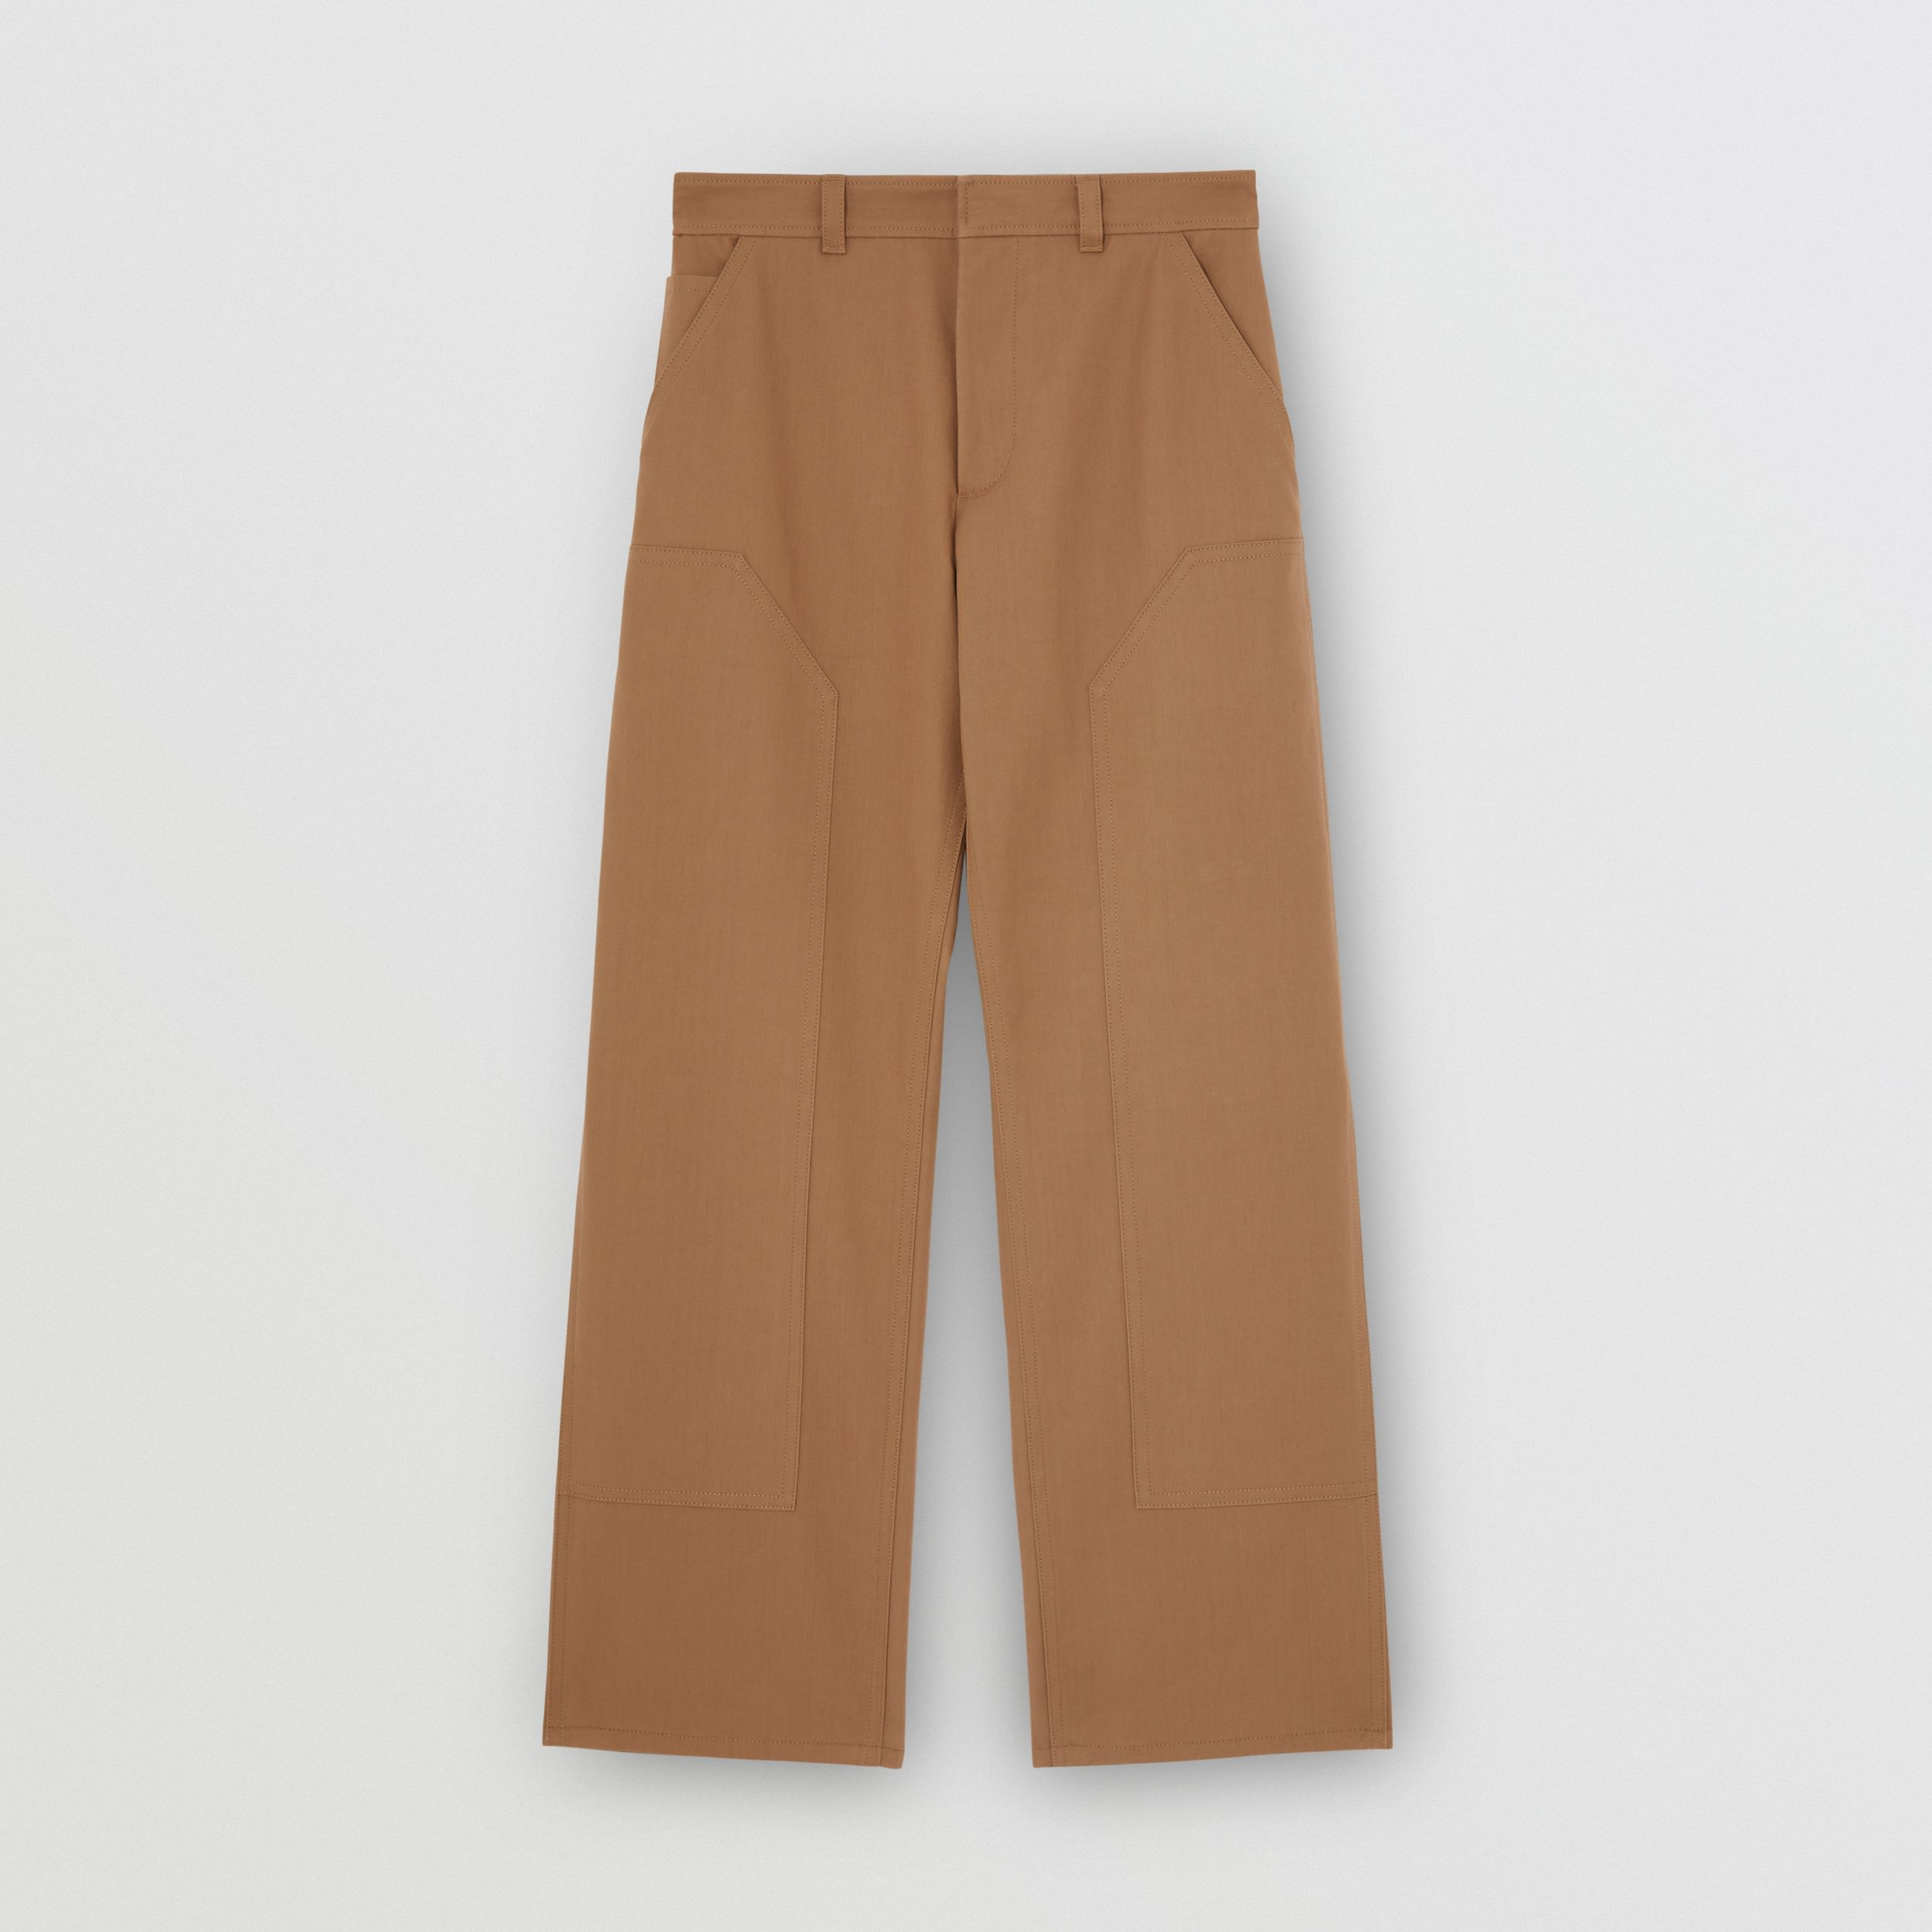 Cotton Twill Tailored Trousers in Warm Walnut - Men | Burberry - 4